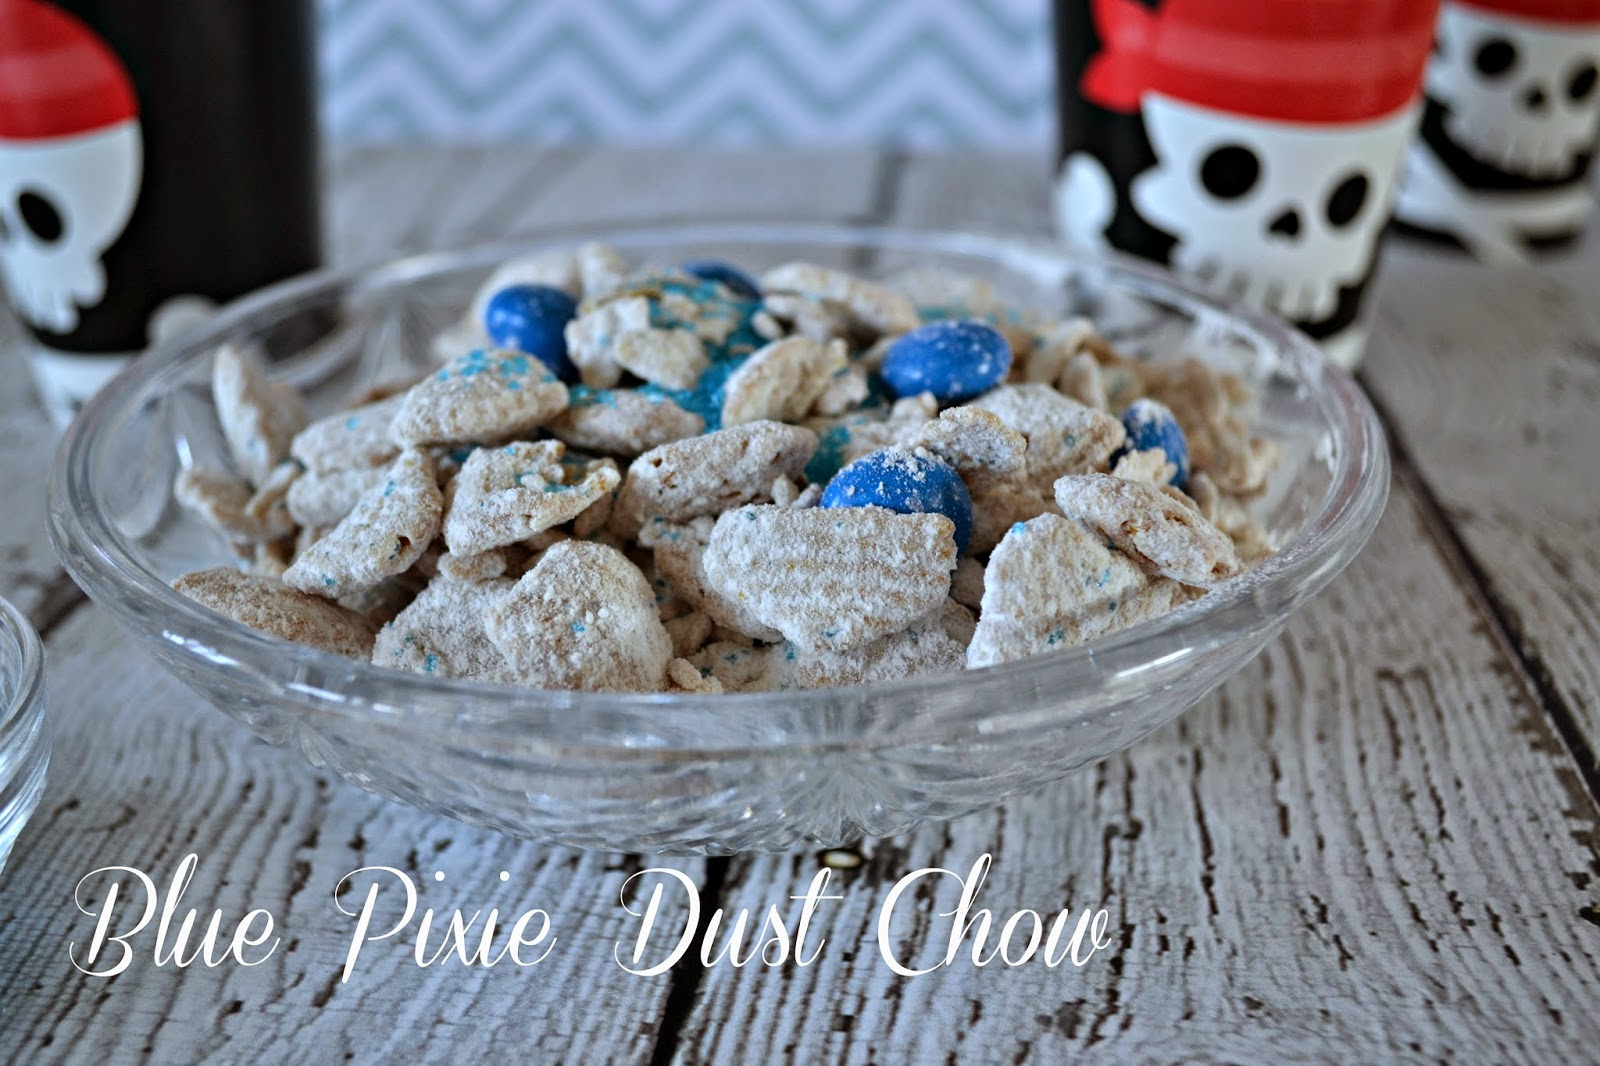 The Pirate Fairy DVD Release - Blue Pixie Dust Chow #Recipe - #ProtectPixieHollow #shop